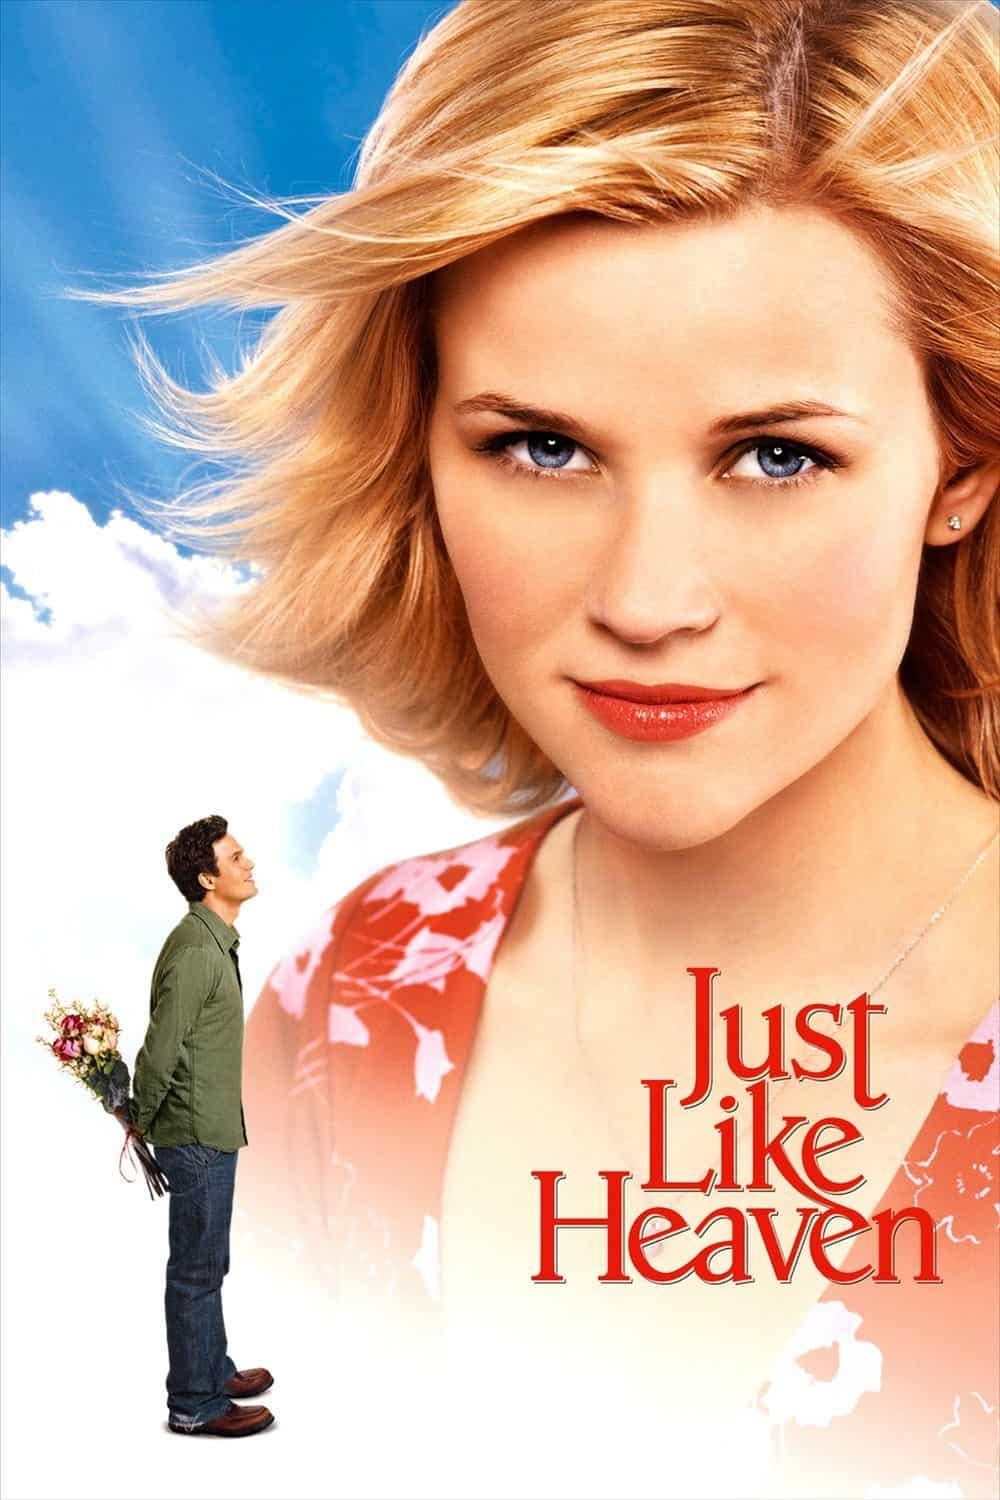 Just like Heaven, 2005